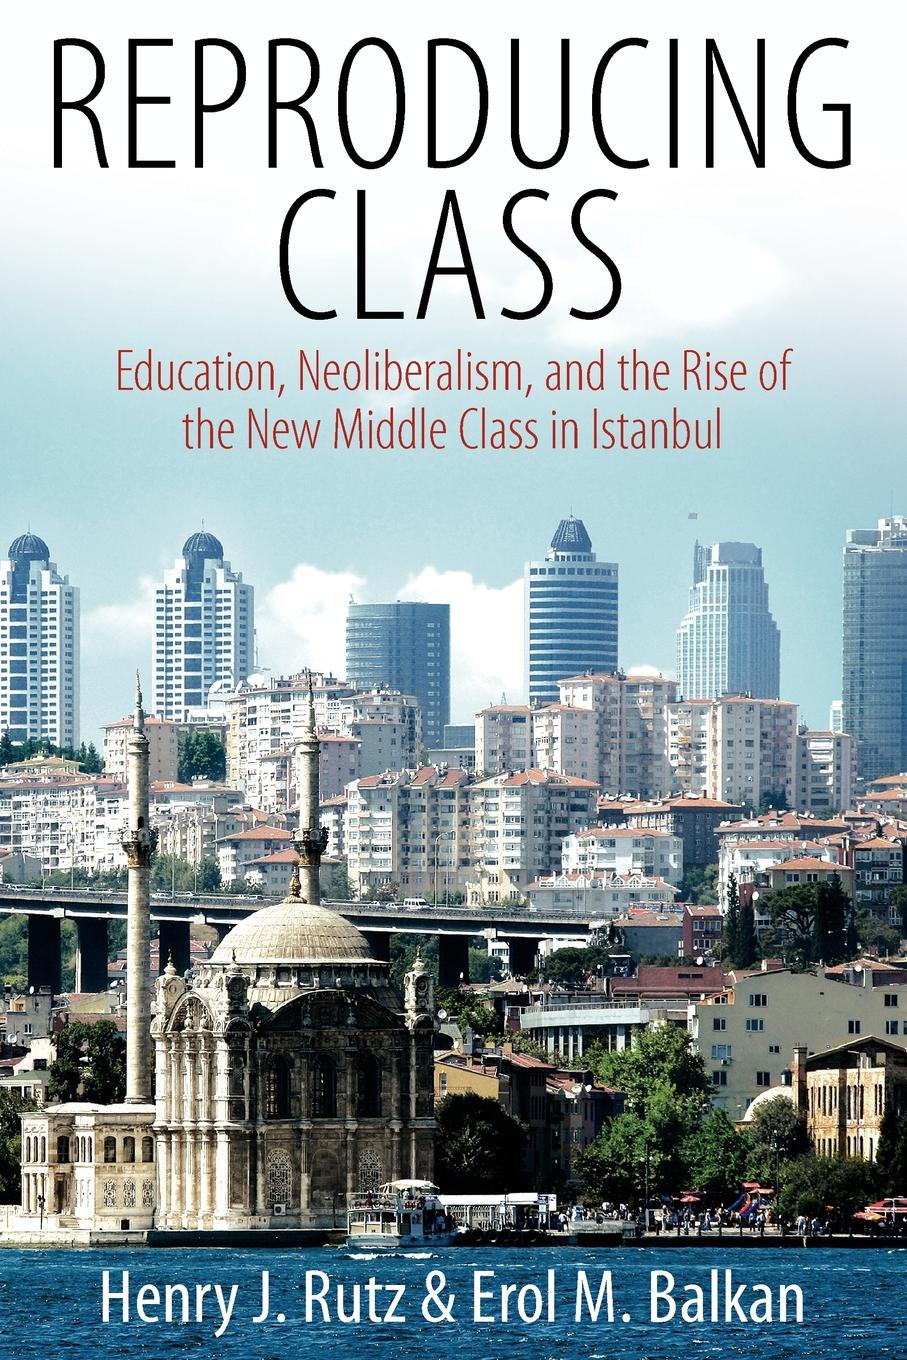 Henry J. Rutz, Erol M. Balkan Reproducing Class. Education, Neoliberalism, and the Rise of the New Middle Class in Istanbul cabot m princess in the middle